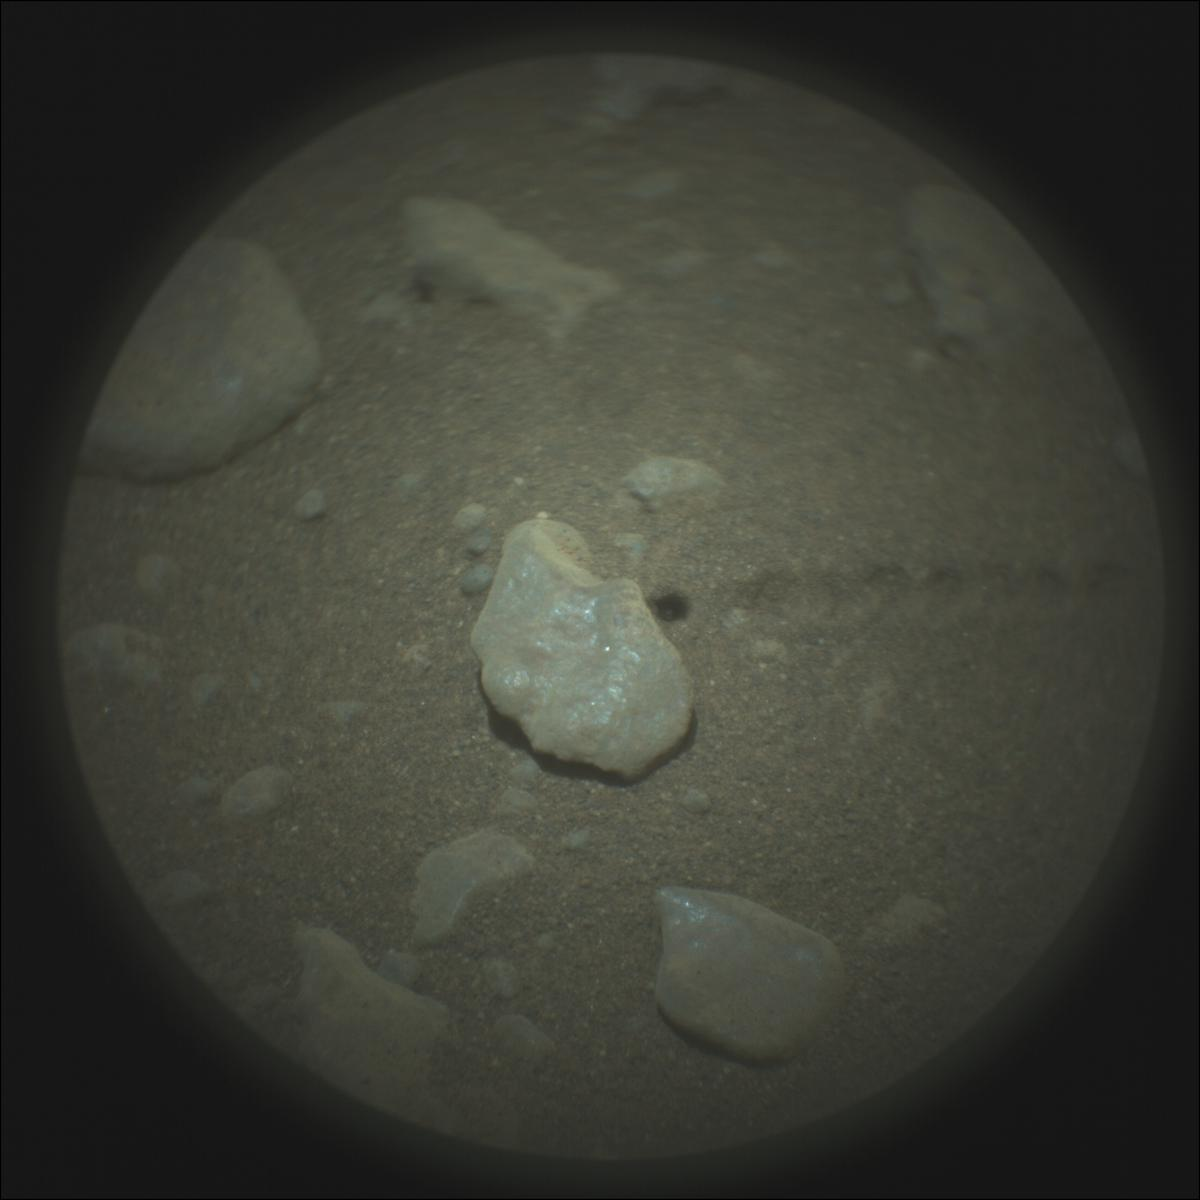 This image was taken by SUPERCAM_RMI onboard NASA's Mars rover Perseverance on Sol 116